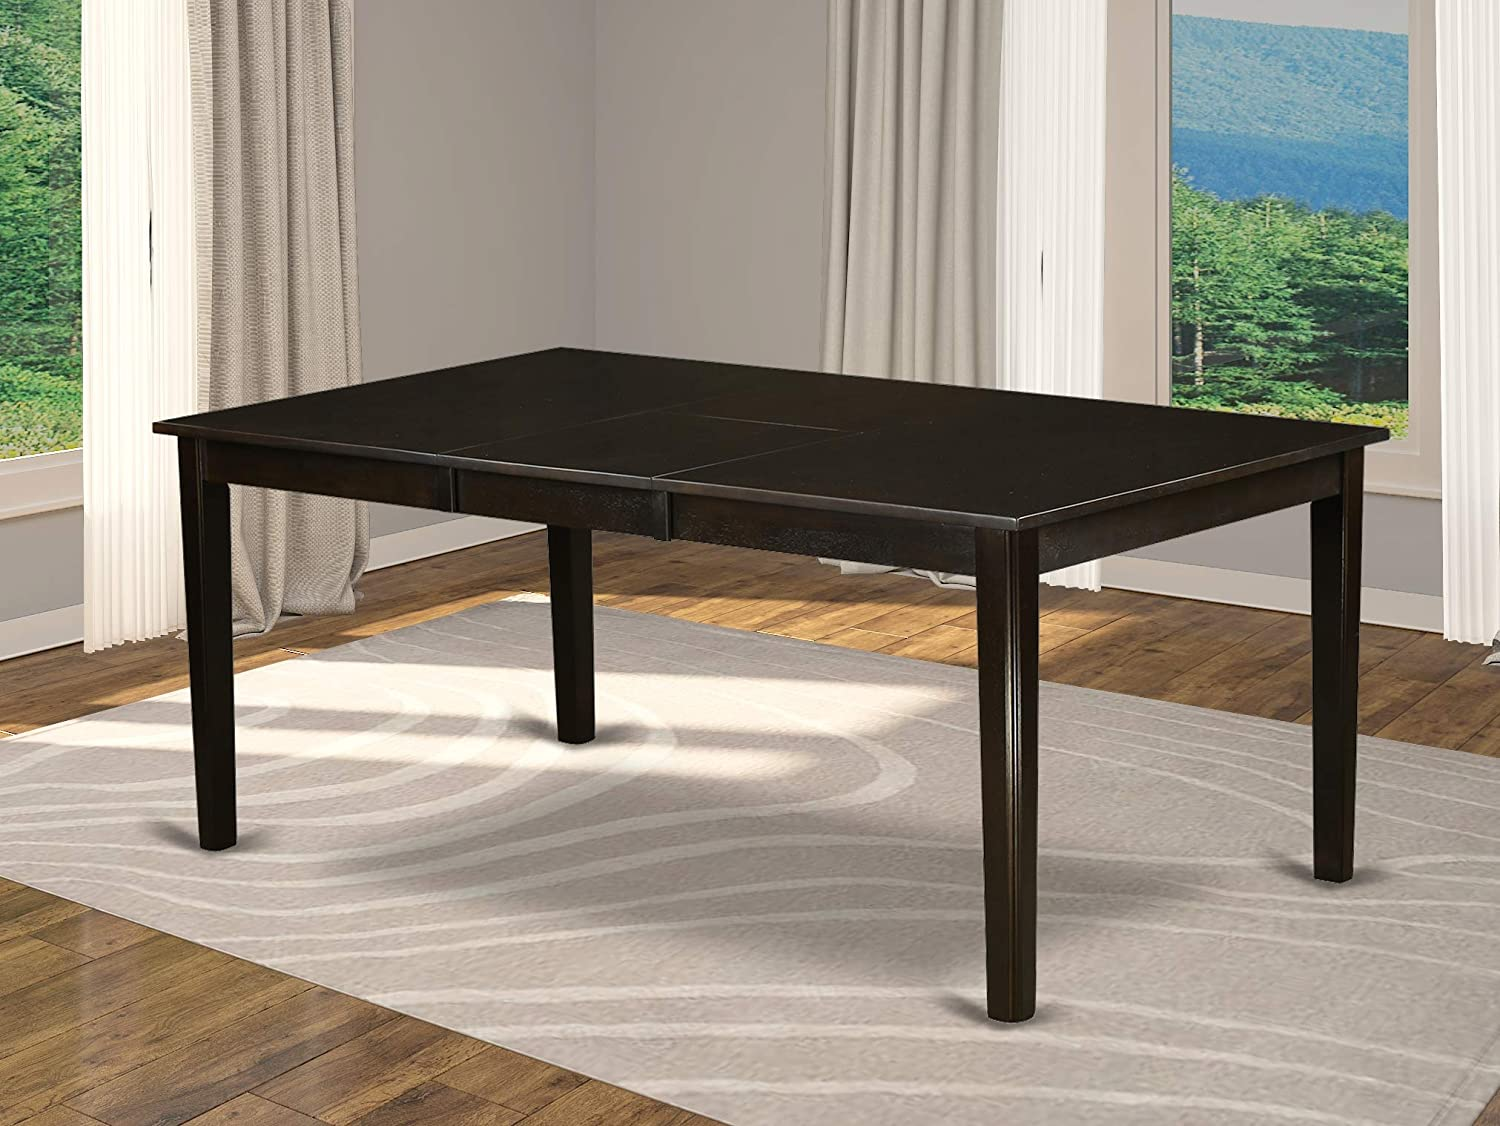 East West Furniture HET CAP T Henley Table Cappuccino Table Top and Cappuccino Finish amazing 4 Legs Solid Wood Table